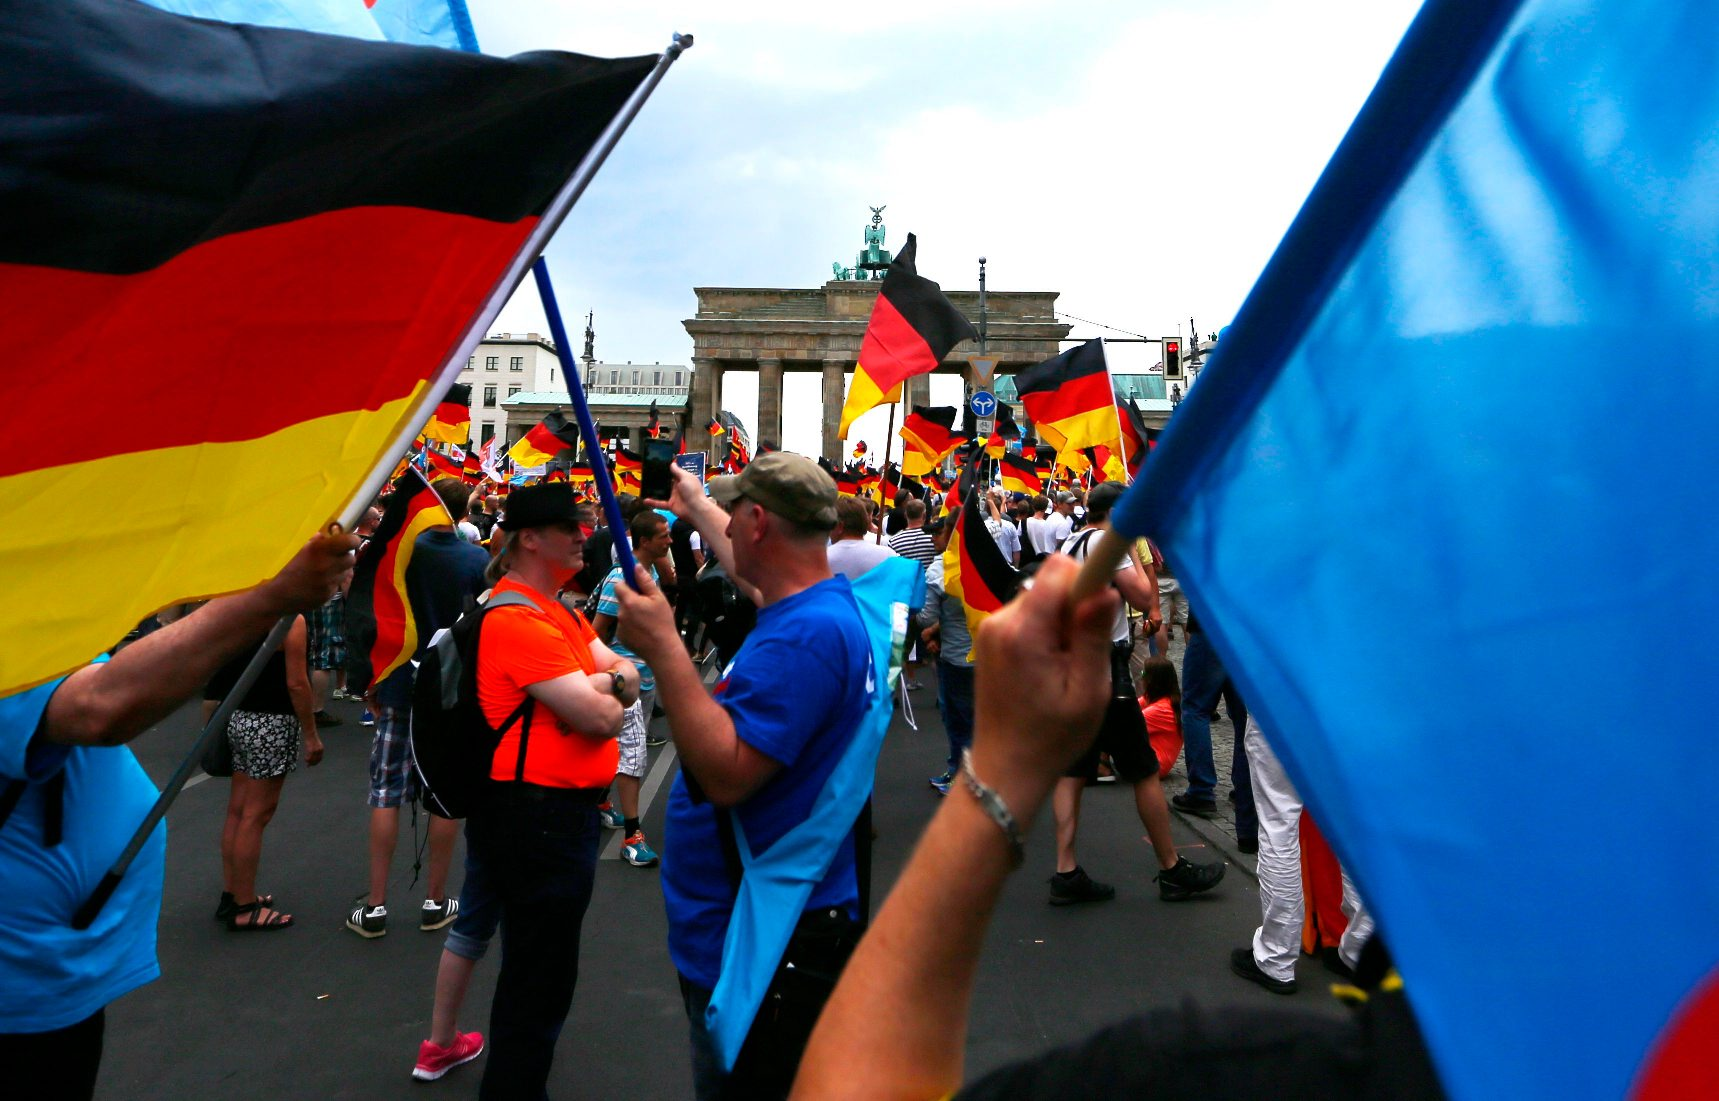 2018-05-27T131344Z_1154385055_UP1EE5R10QV6I_RTRMADP_3_GERMANY-PROTEST-AFD